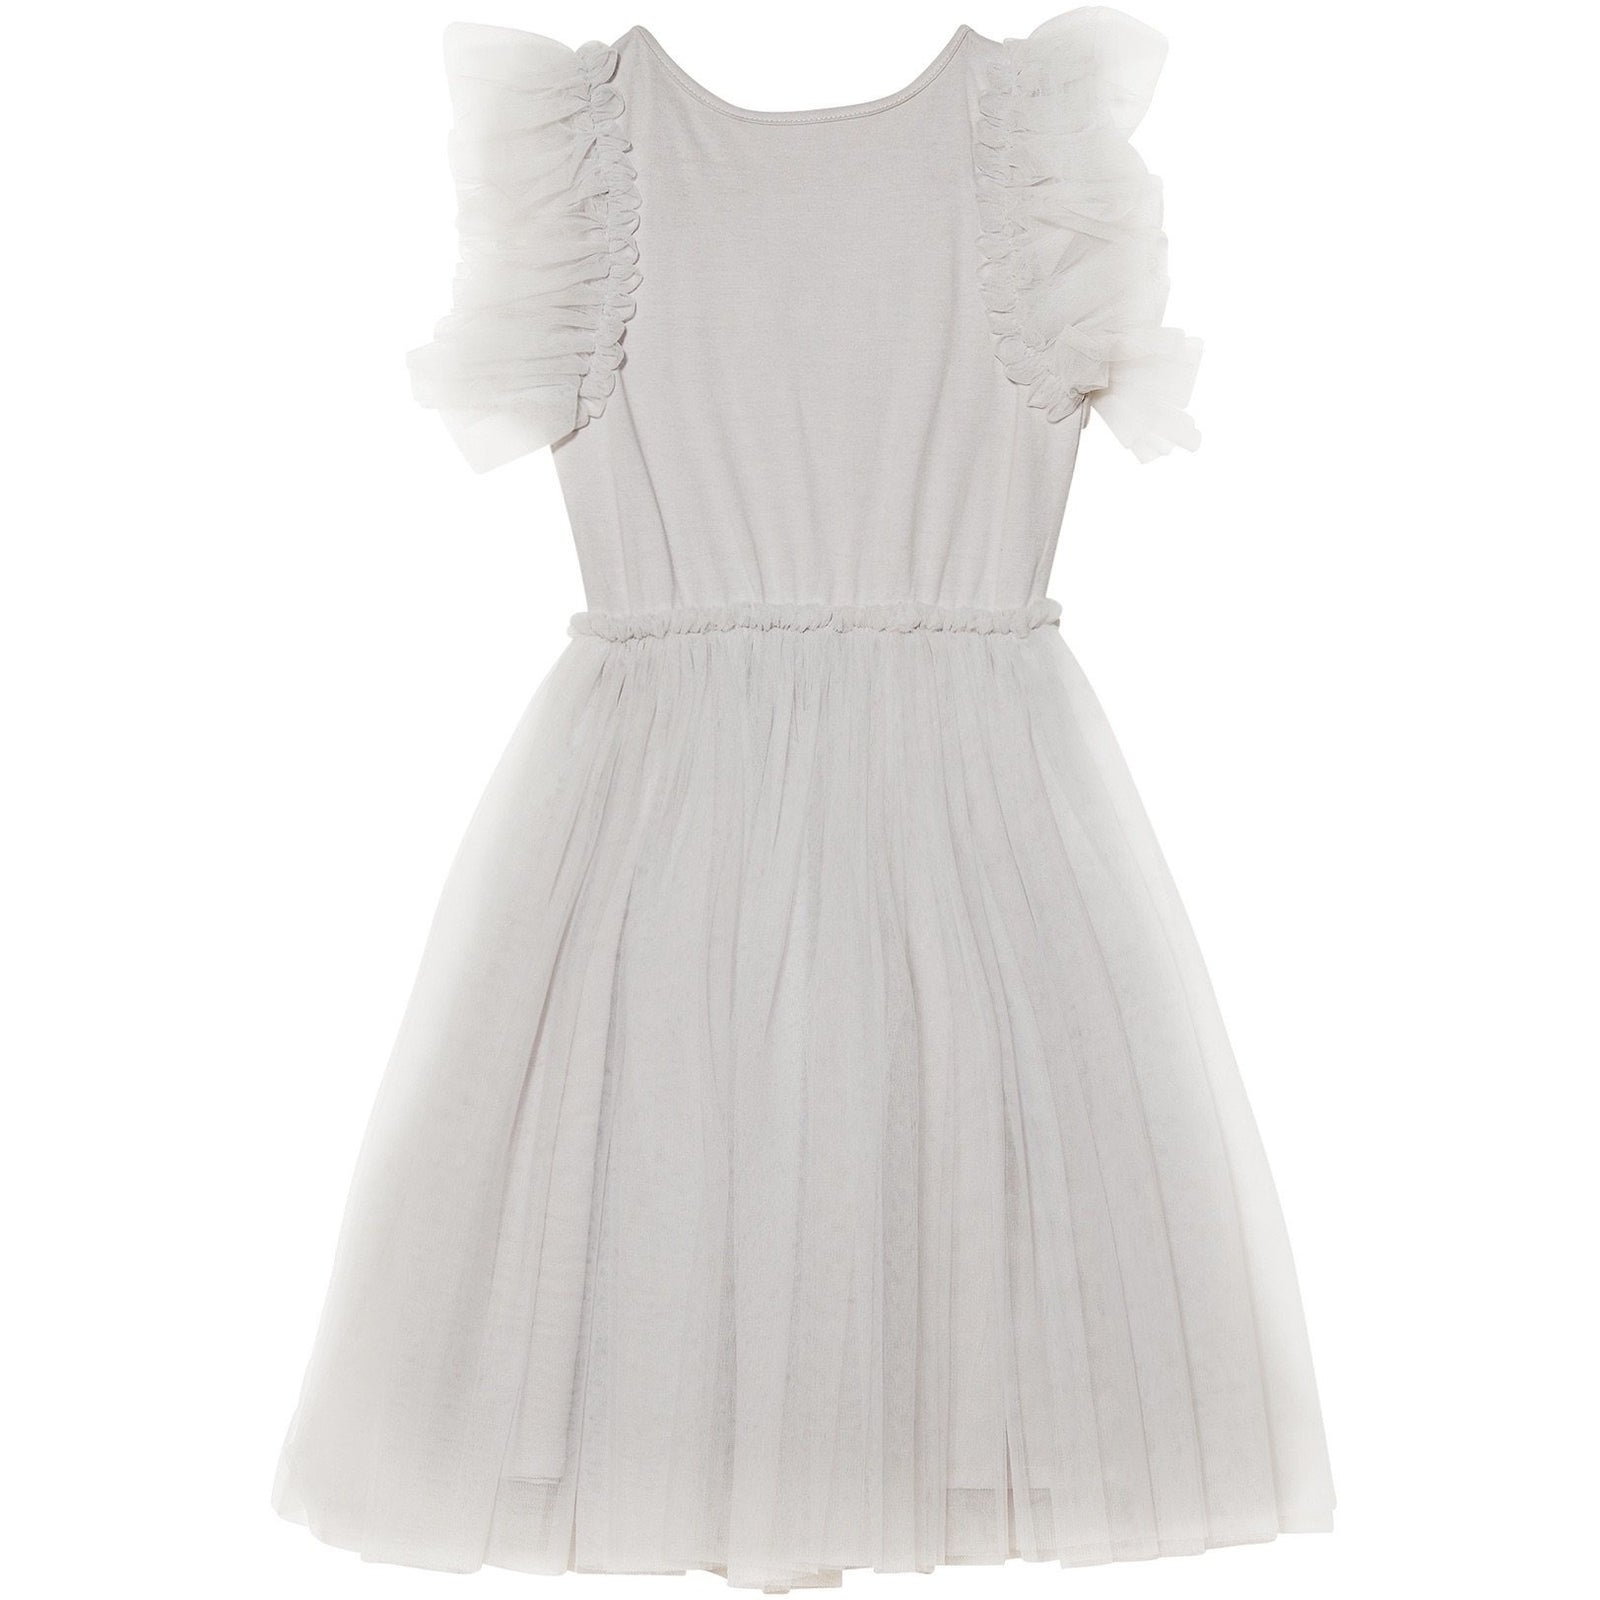 Dazzling Heart Tutu Dress - by Tutu du Monde